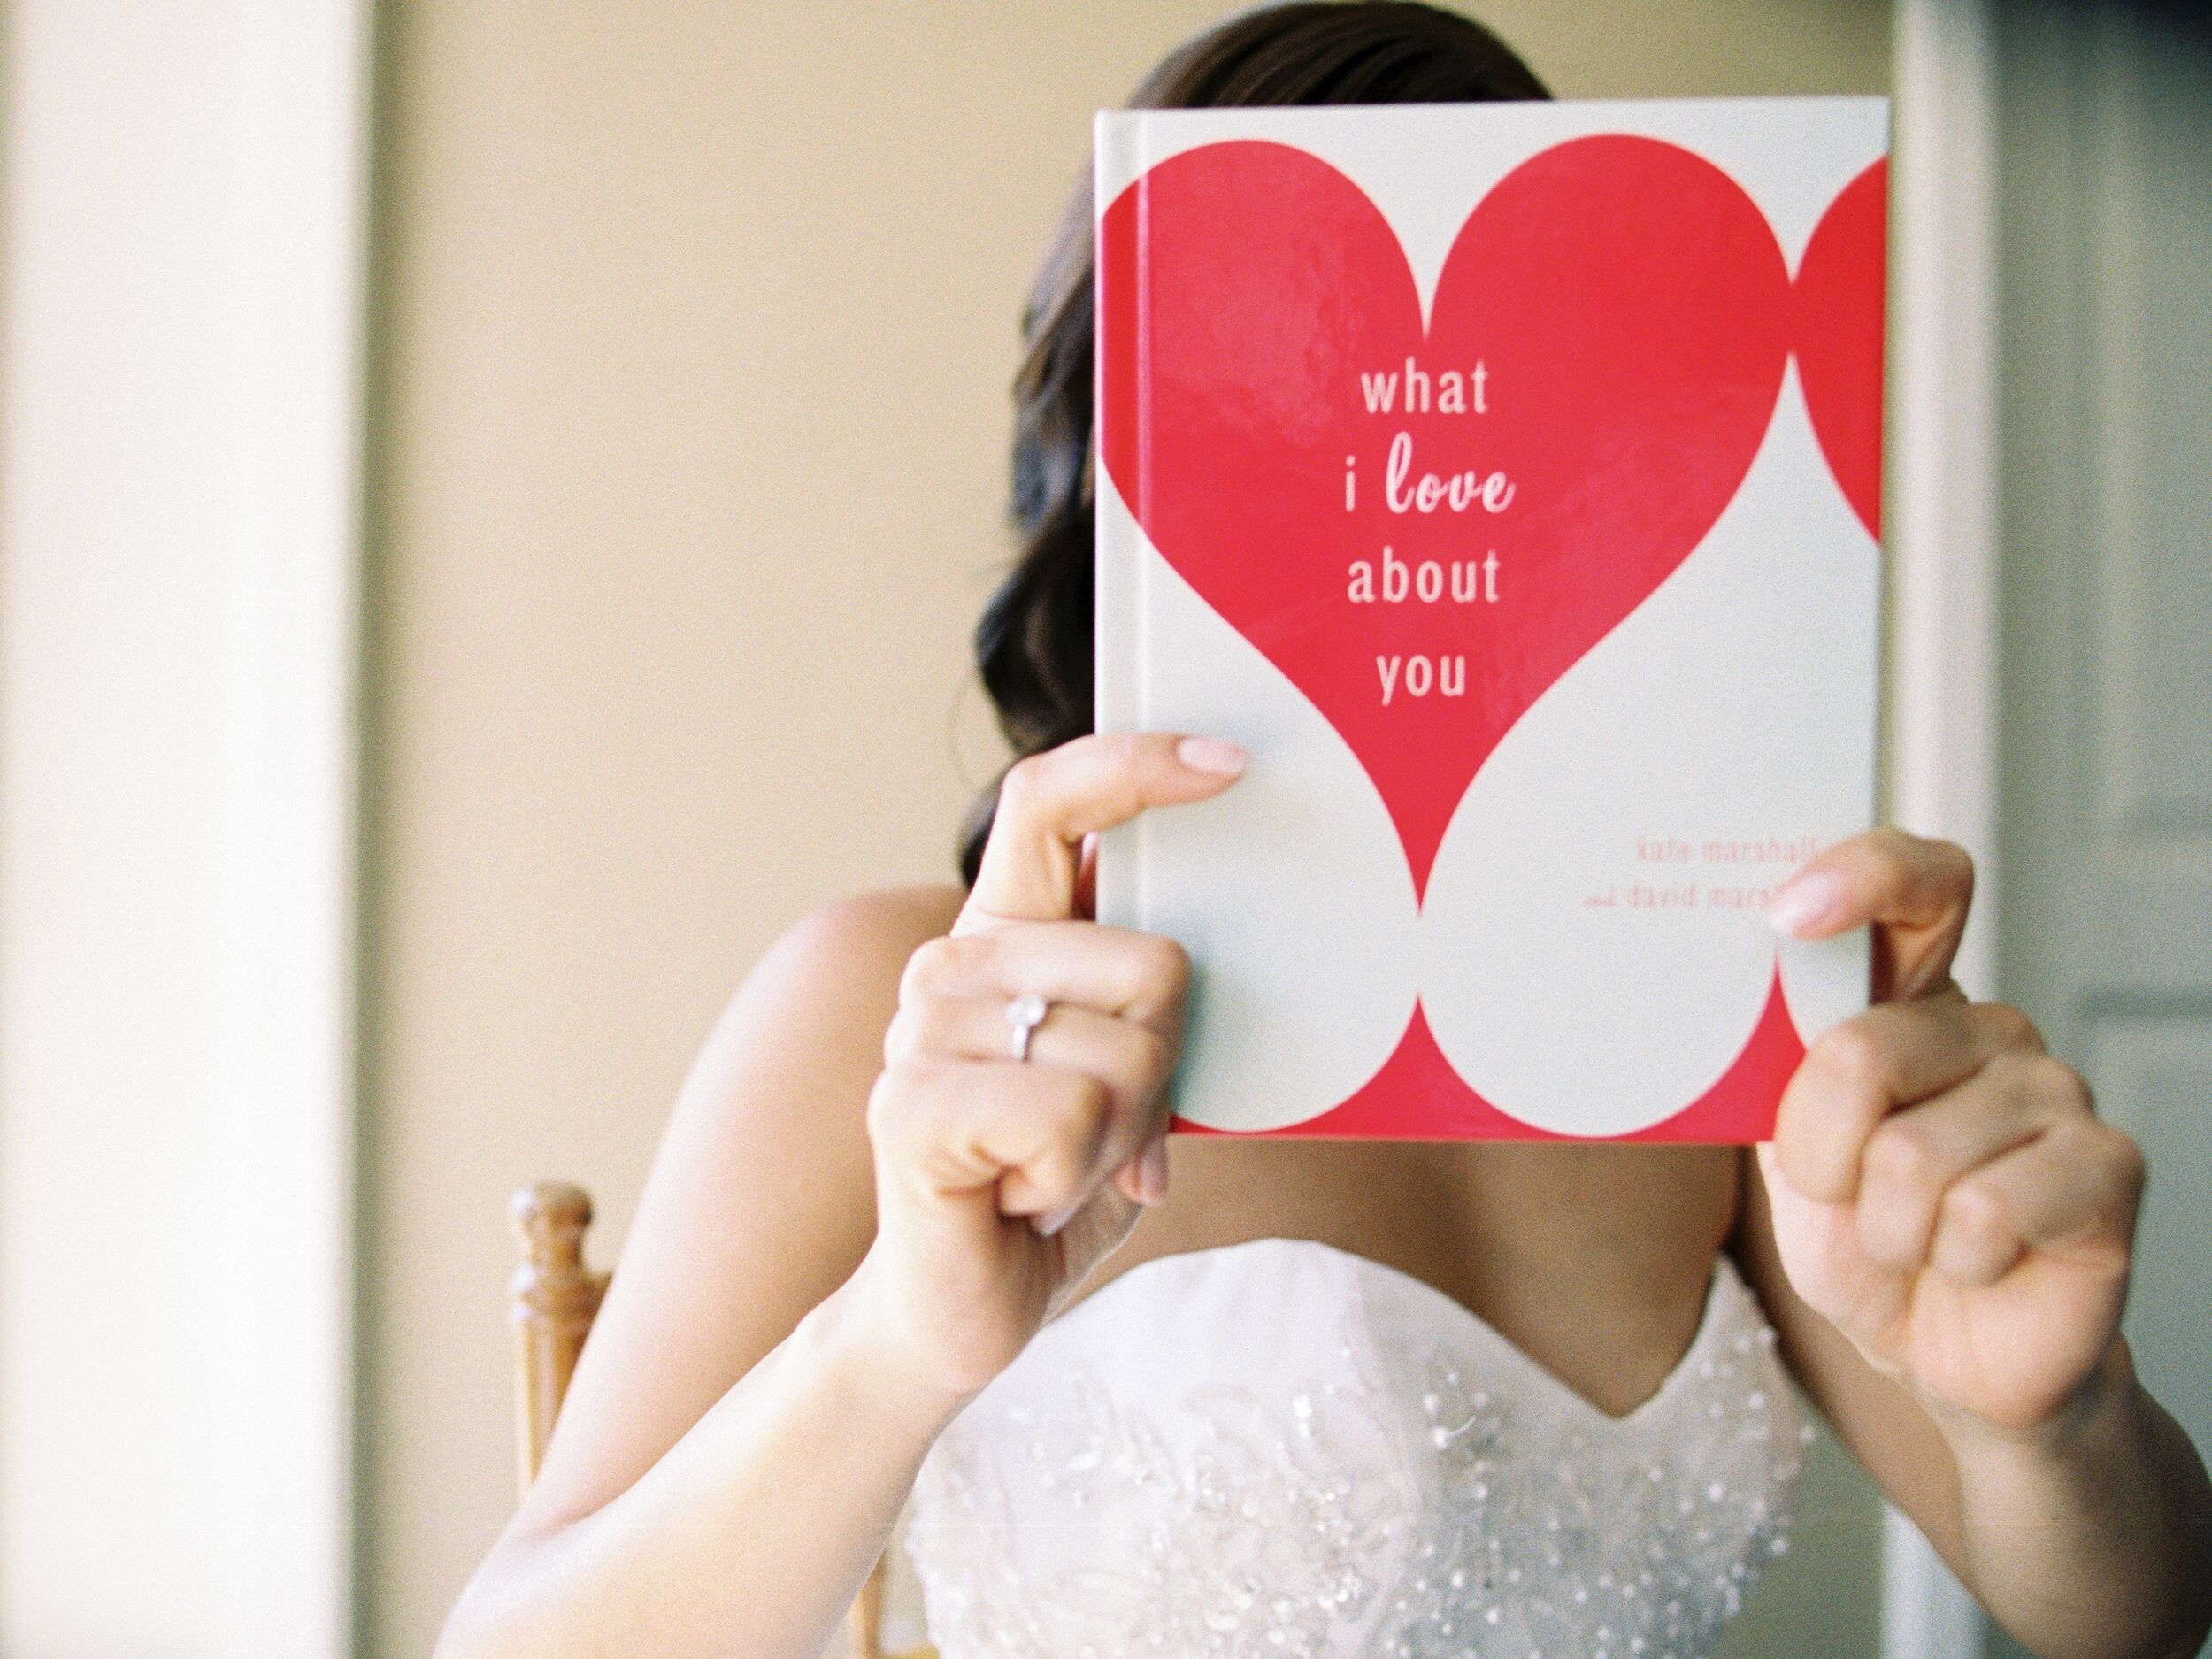 Gifts For Bride And Groom On Wedding Day: When Should We Exchange Bride And Groom Gifts?